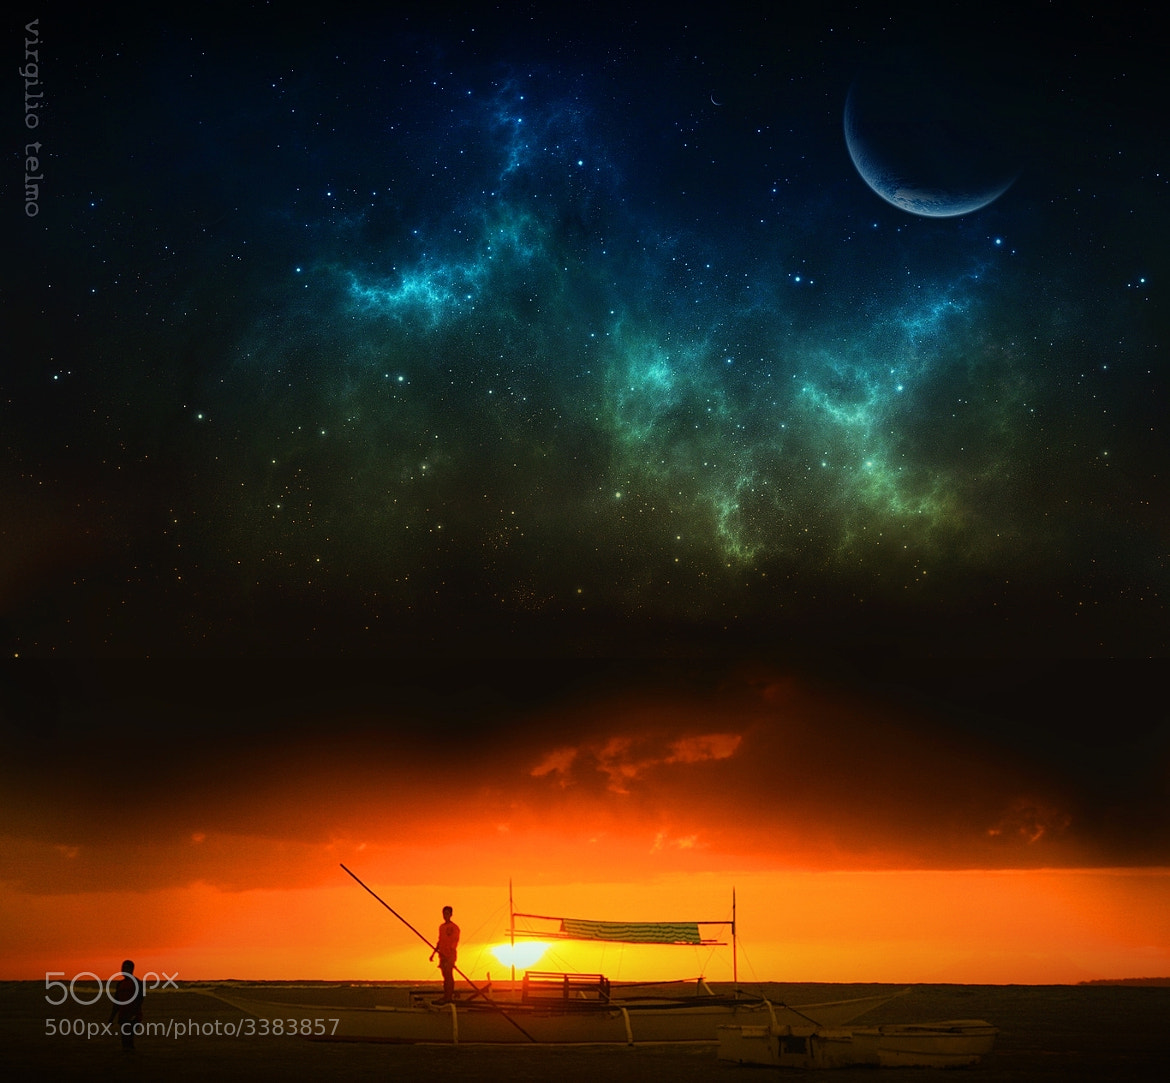 Photograph The heavens above by Vey Telmo on 500px